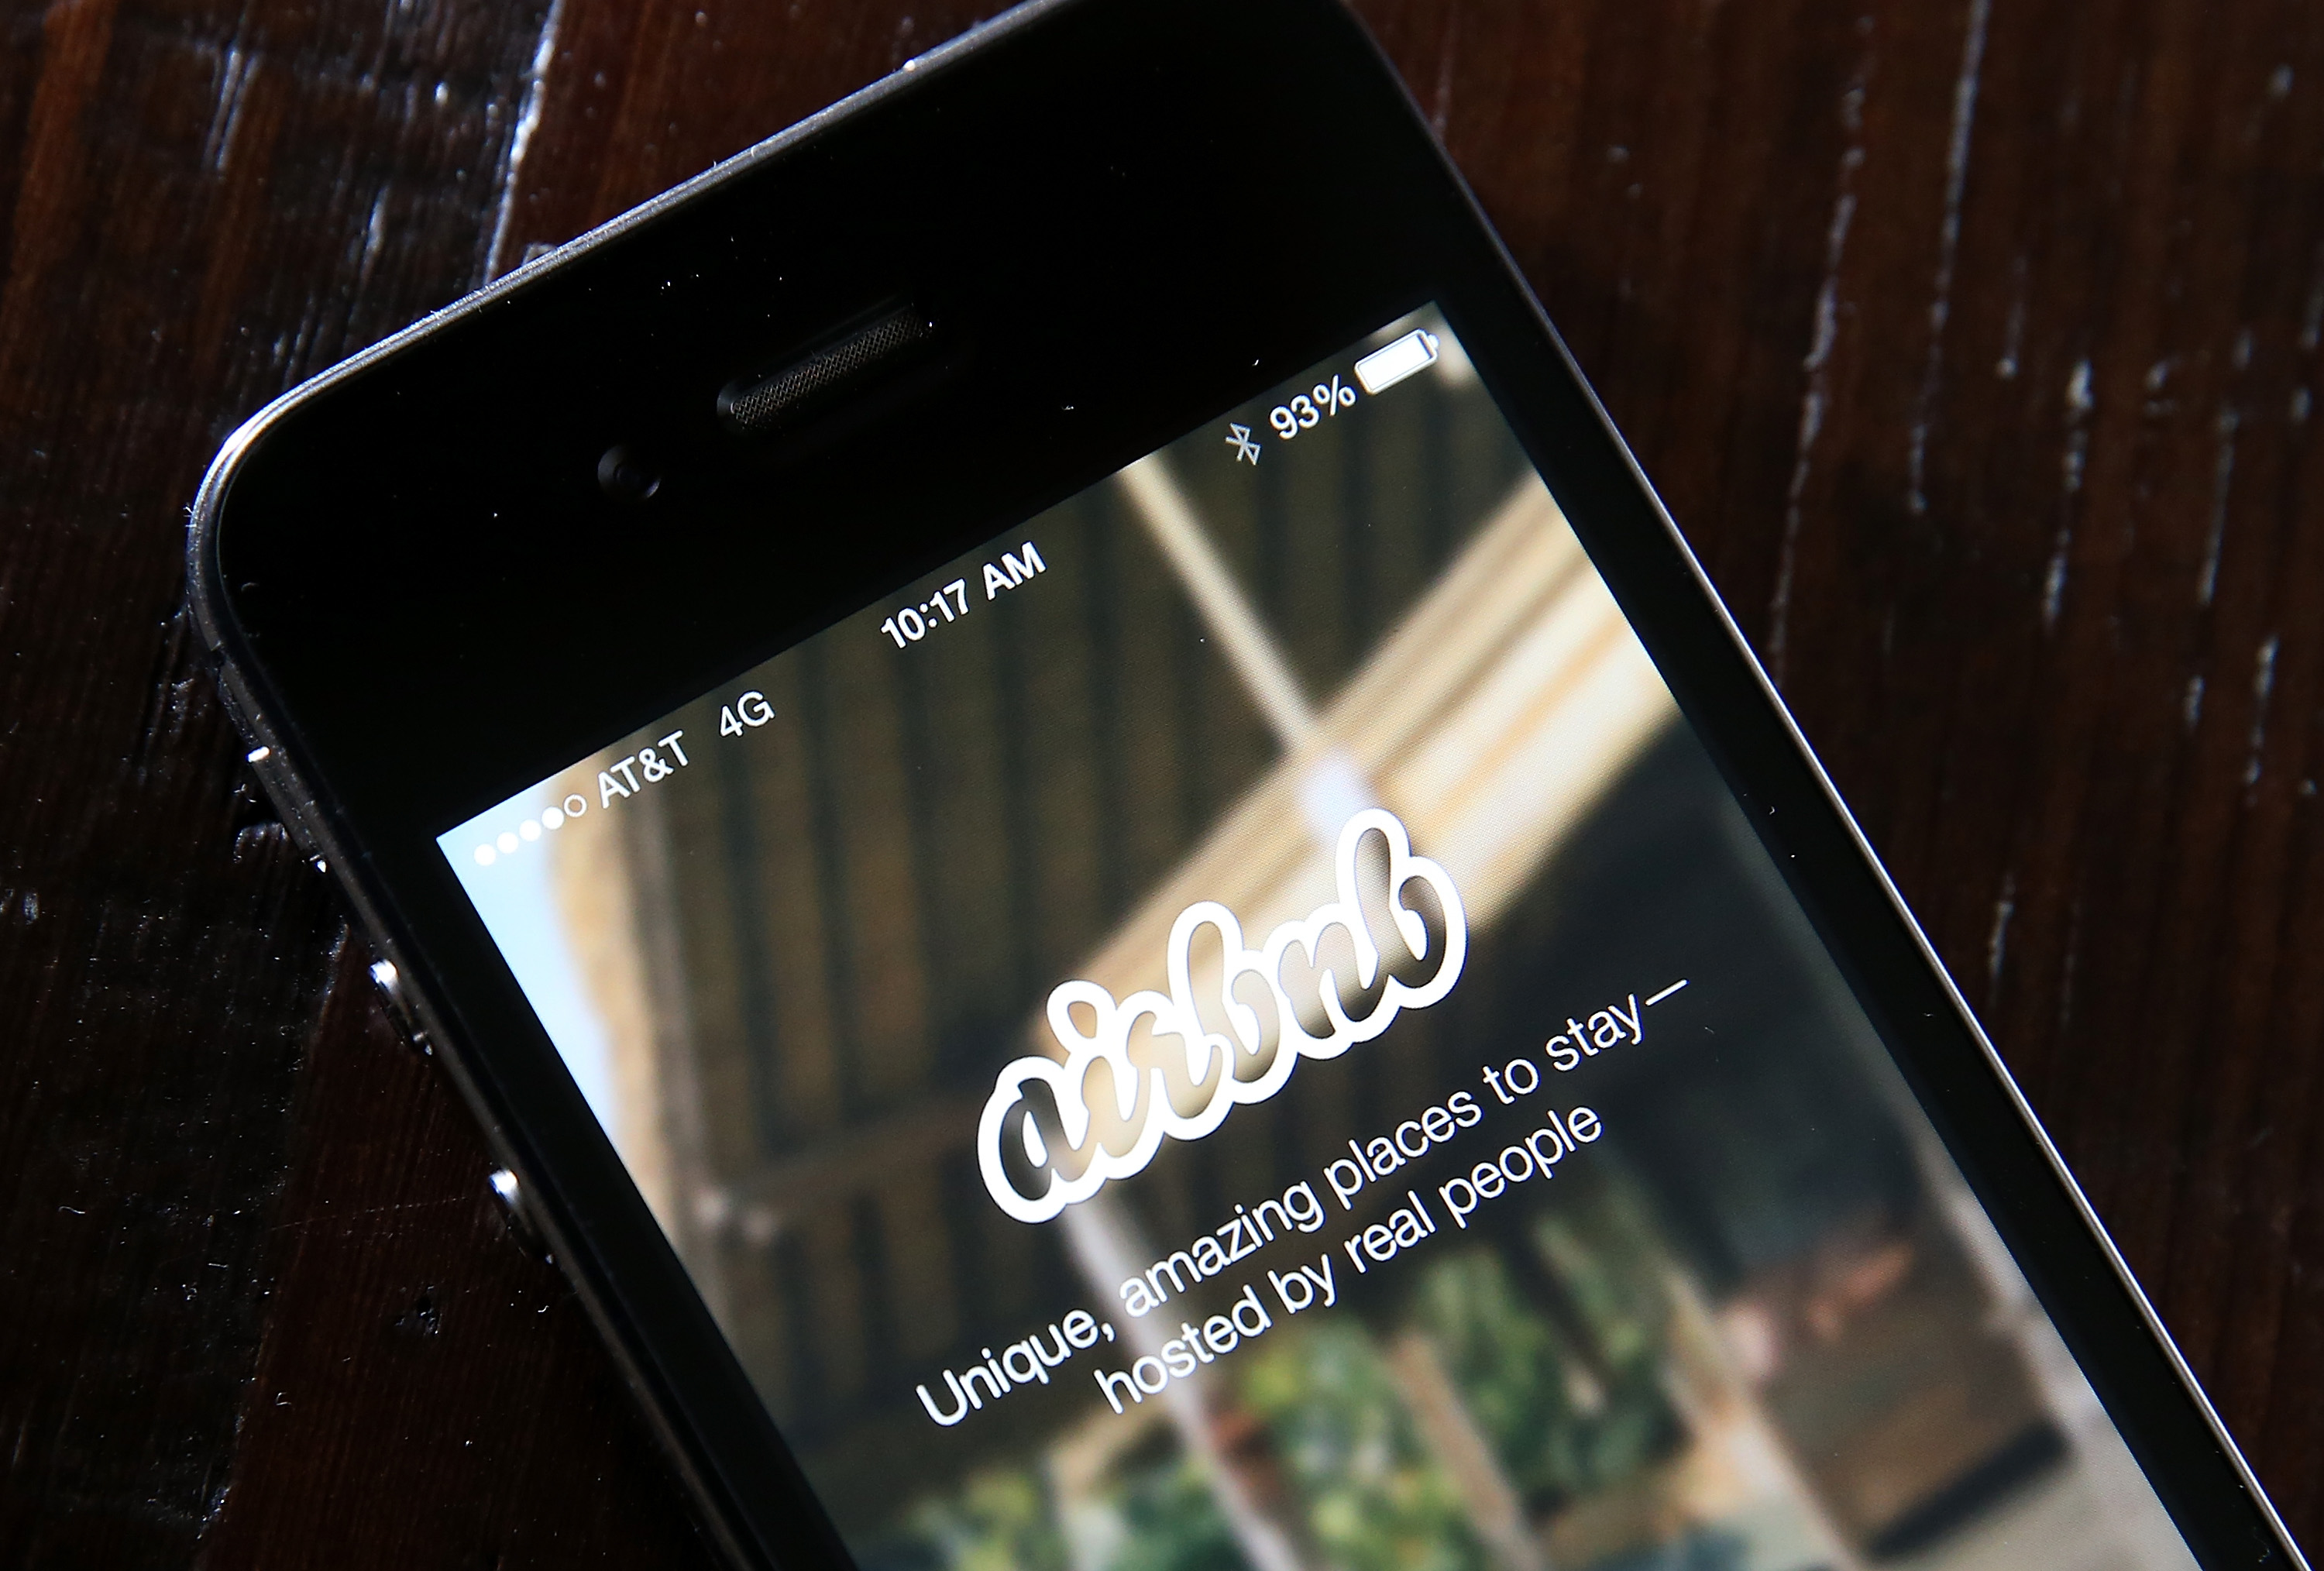 The Airbnb app is displayed on a smartphone on April 21, 2014 in San Anselmo, California.